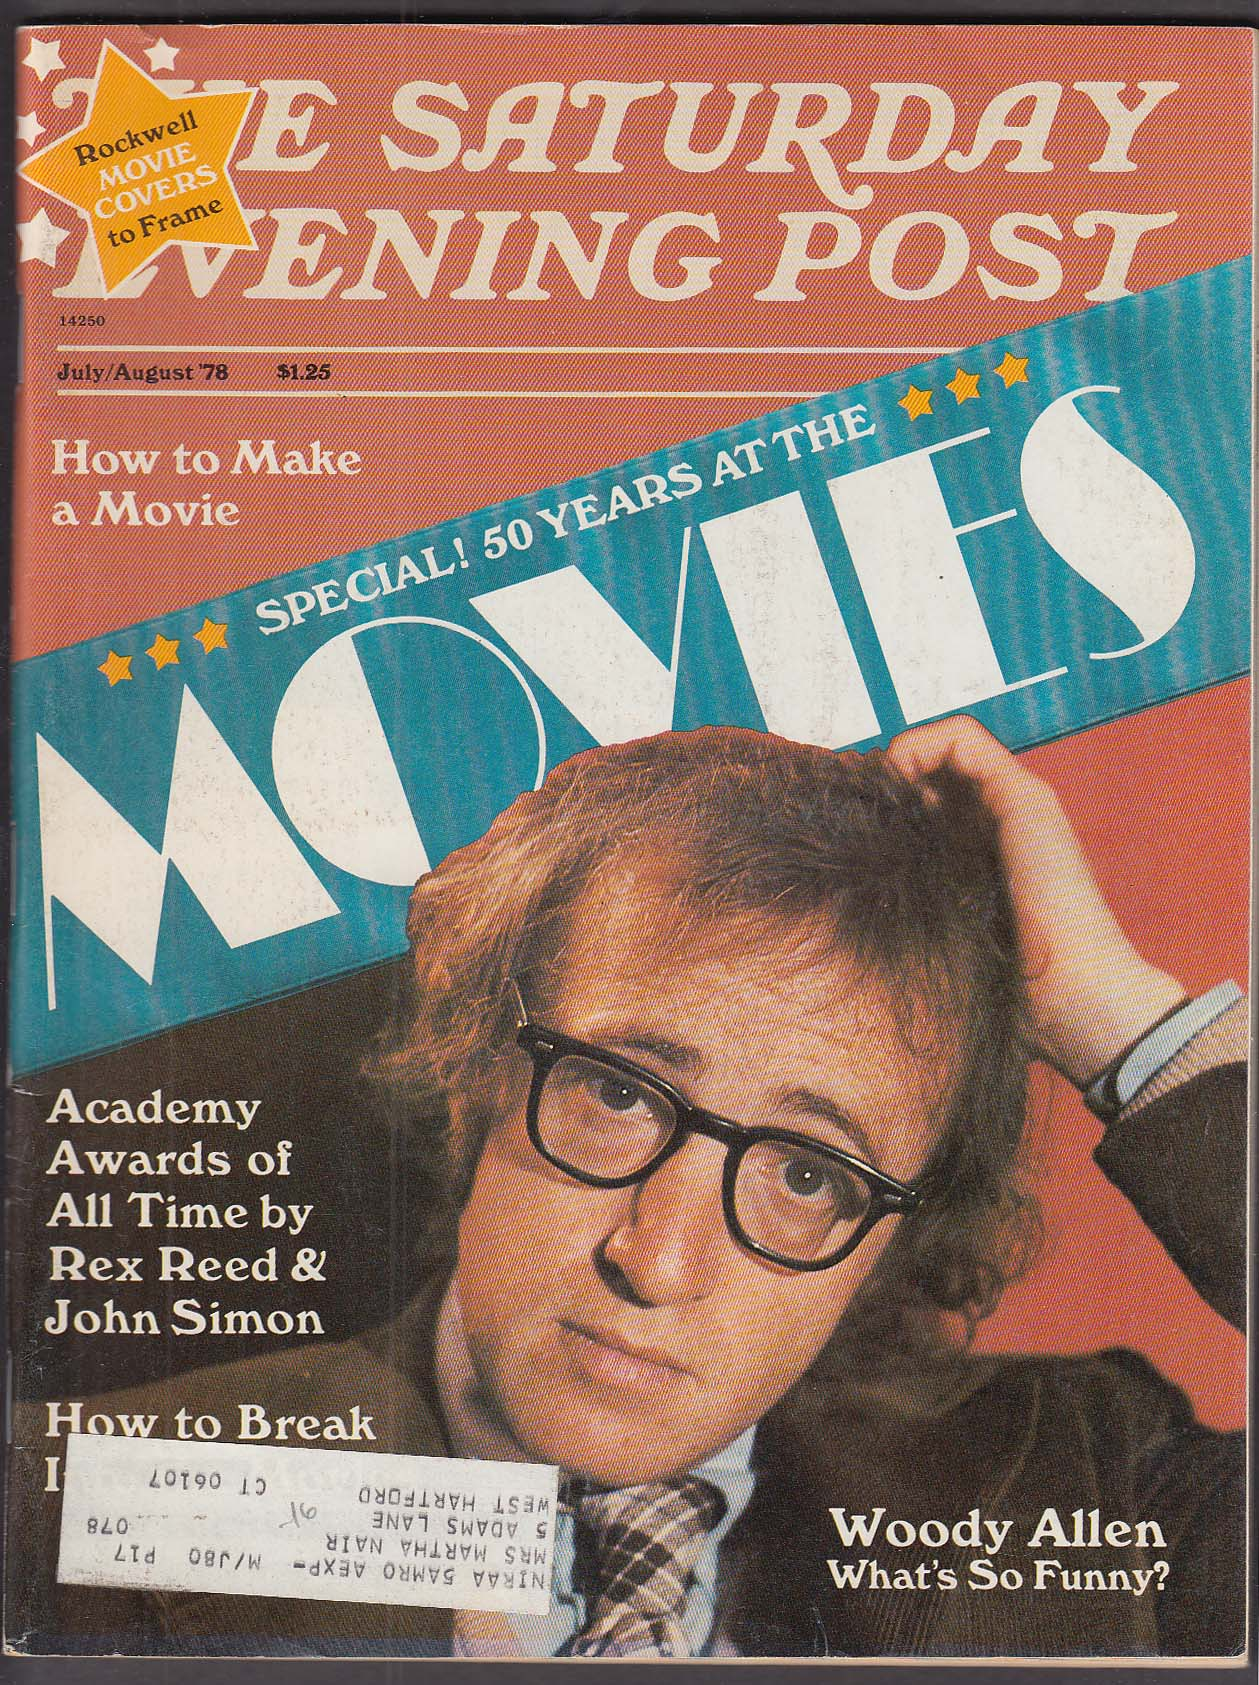 Image for SATURDAY EVENING POST Woody Allen Academy Awards 7-8 1978